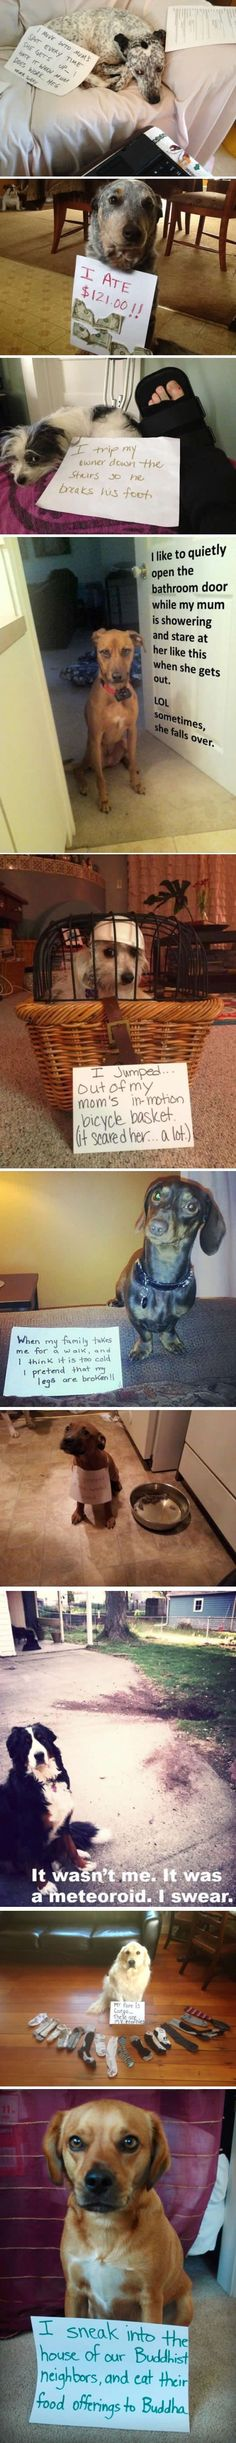 Dog shaming site --one of the joys of the Internet (Don't think any dogs were hurt in the production of these photos)